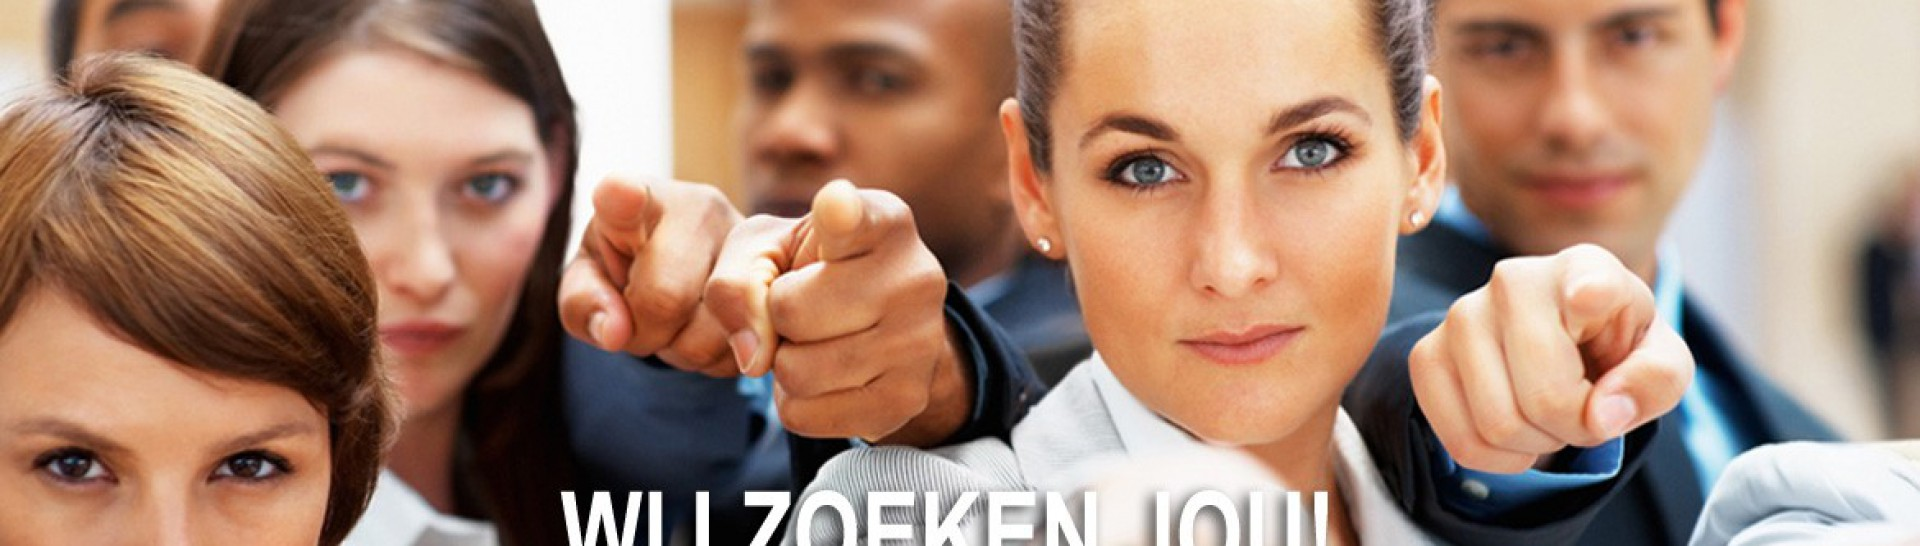 Vacatures: Operationeel Manager, Accountmanager Binnendienst en Accountmanager ICT Buitendienst